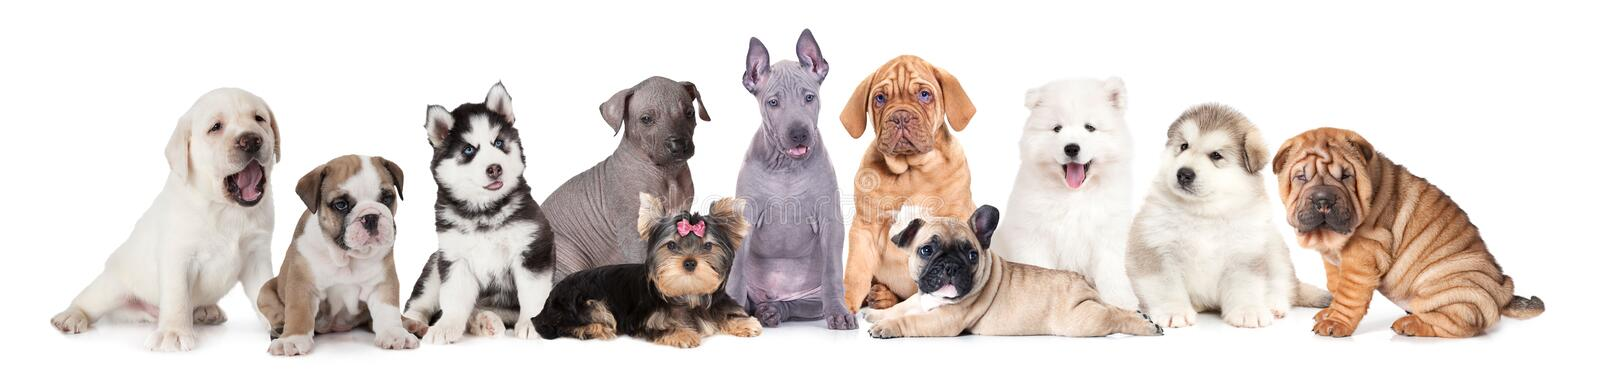 Un grand groupe de chiots photo stock